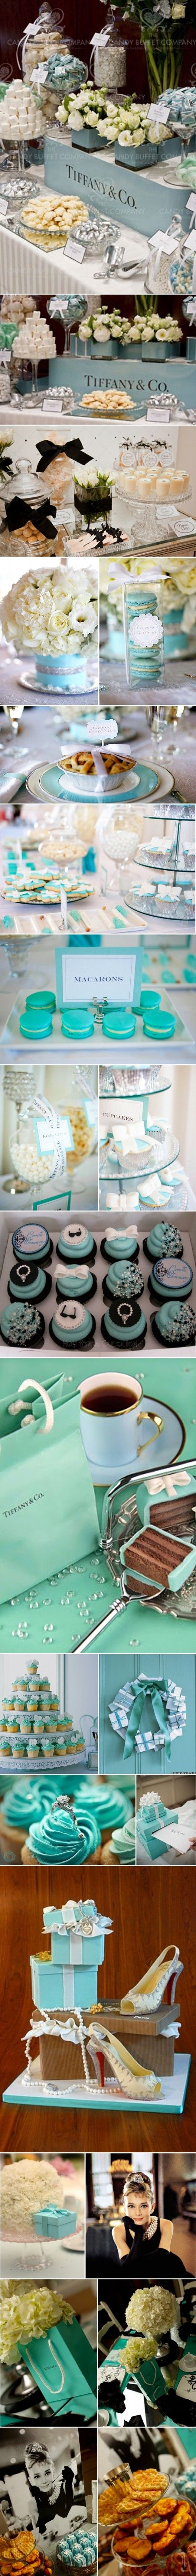 Tiffany & Co. Theme: Shower Ideas, Tiffany Parties, Theme Bridal Shower, Theme Parties, Tiffany Blue, Breakfast At Tiffany, Tiffany Bridal Shower, Shower Theme, Tiffany Theme